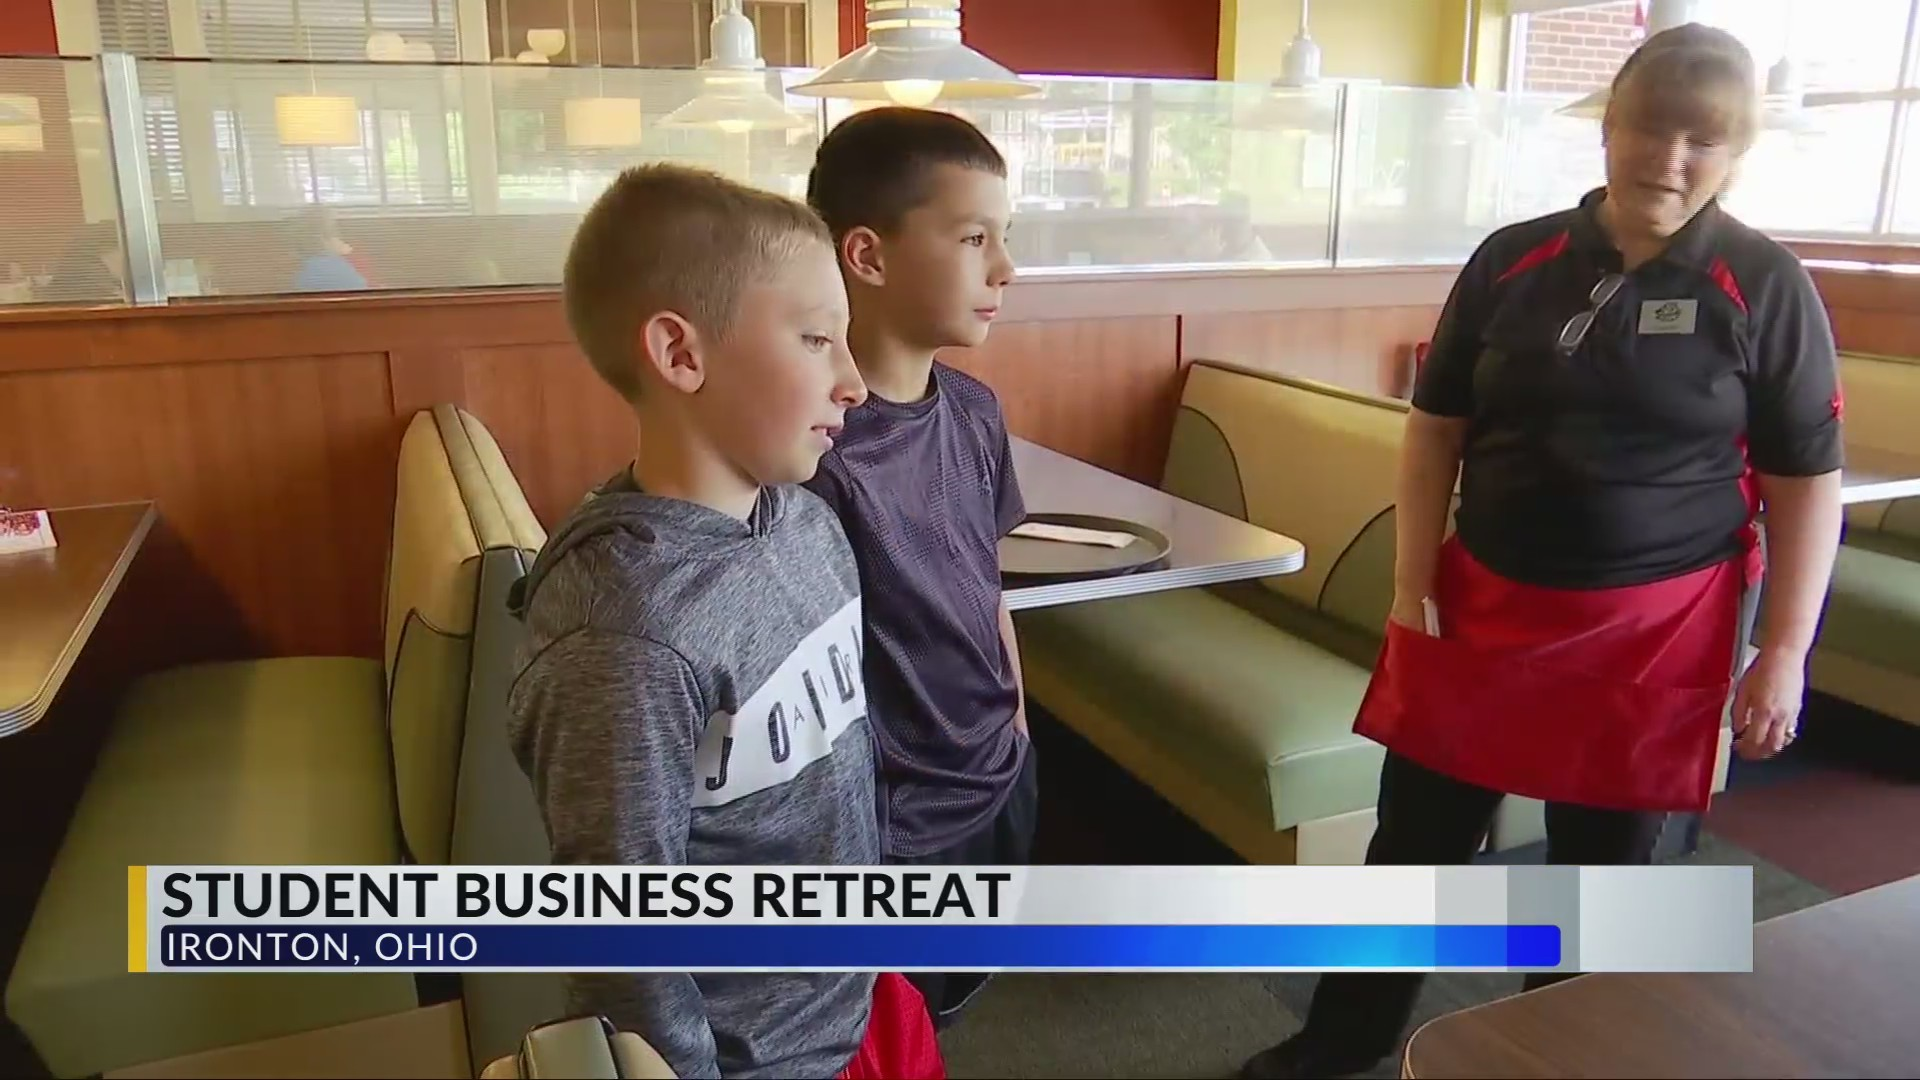 Students on business retreat, learn outside of the classroom